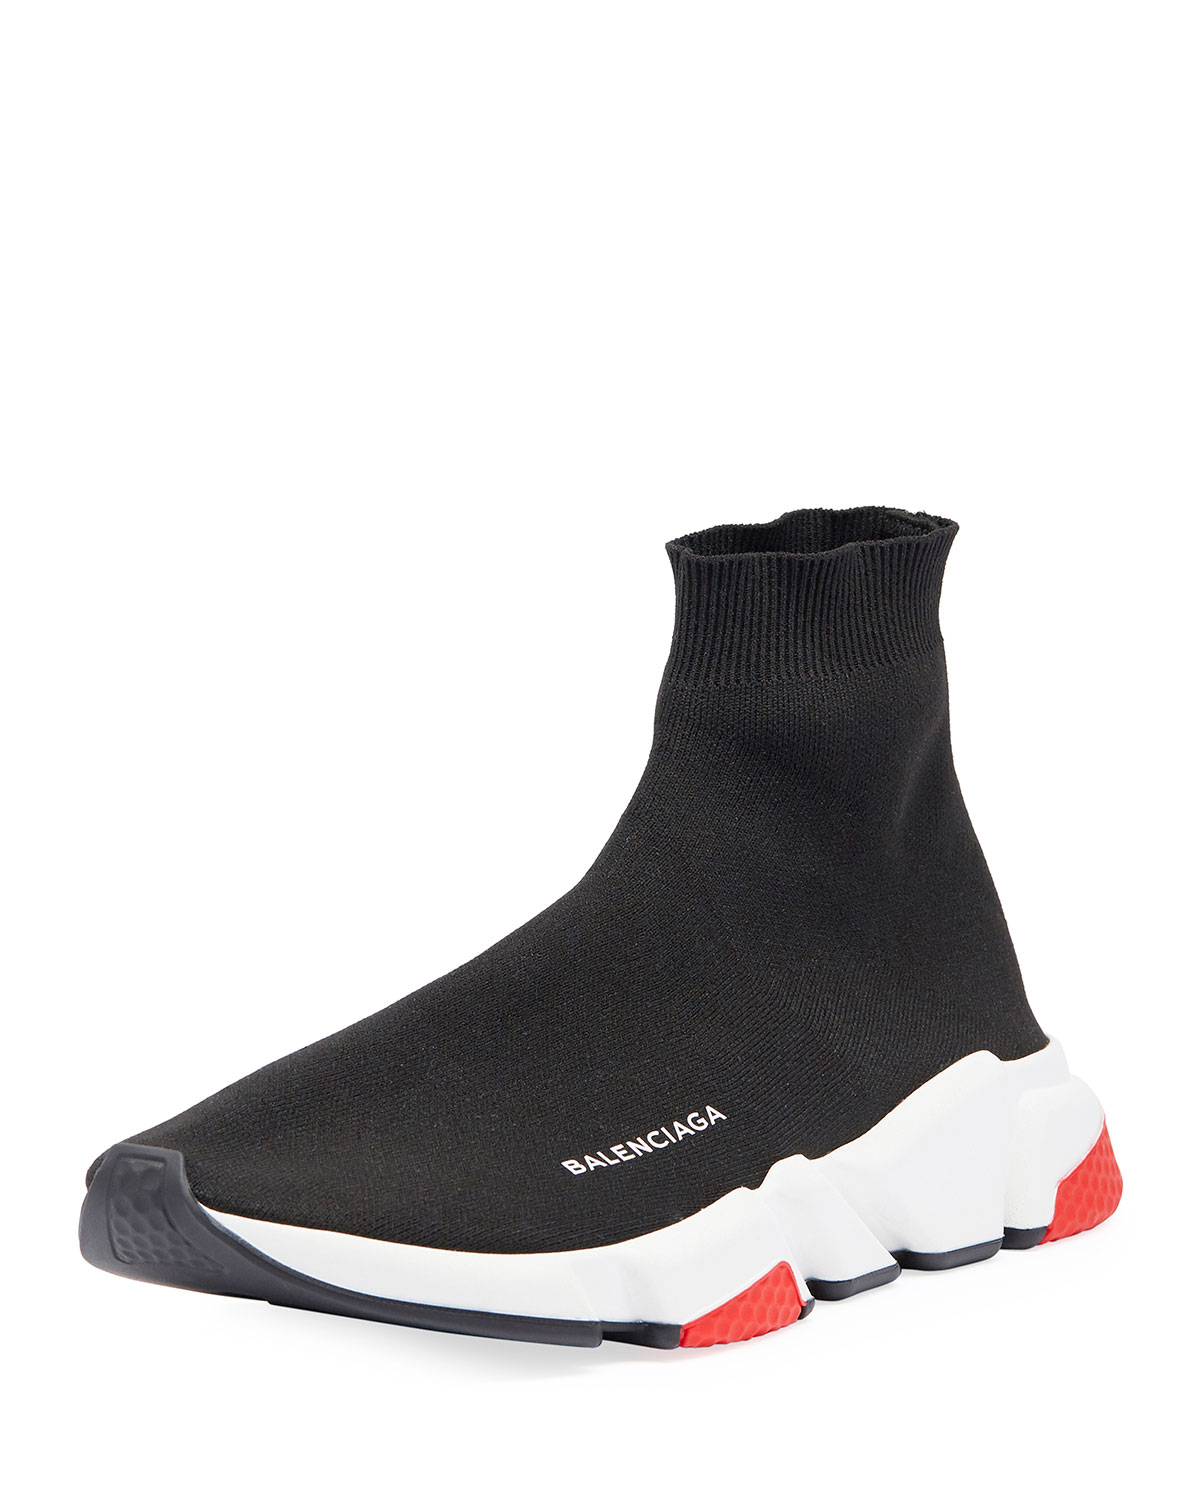 749deb37e3be19 Balenciaga Men's Speed Mid-Top Trainer Sock Sneakers | Neiman Marcus